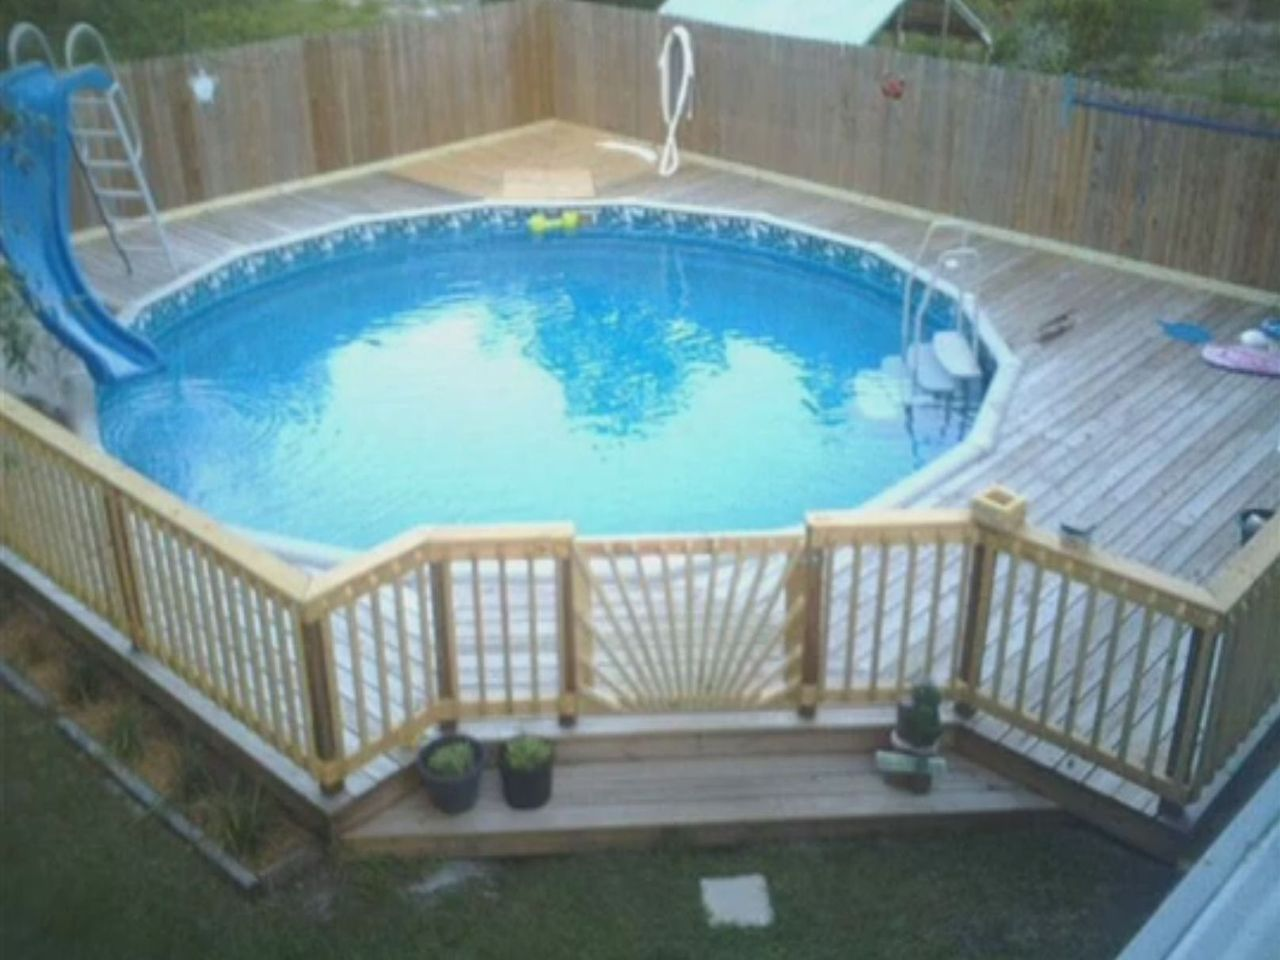 ULTIMATE GUIDE TO ABOVE-GROUND POOLS